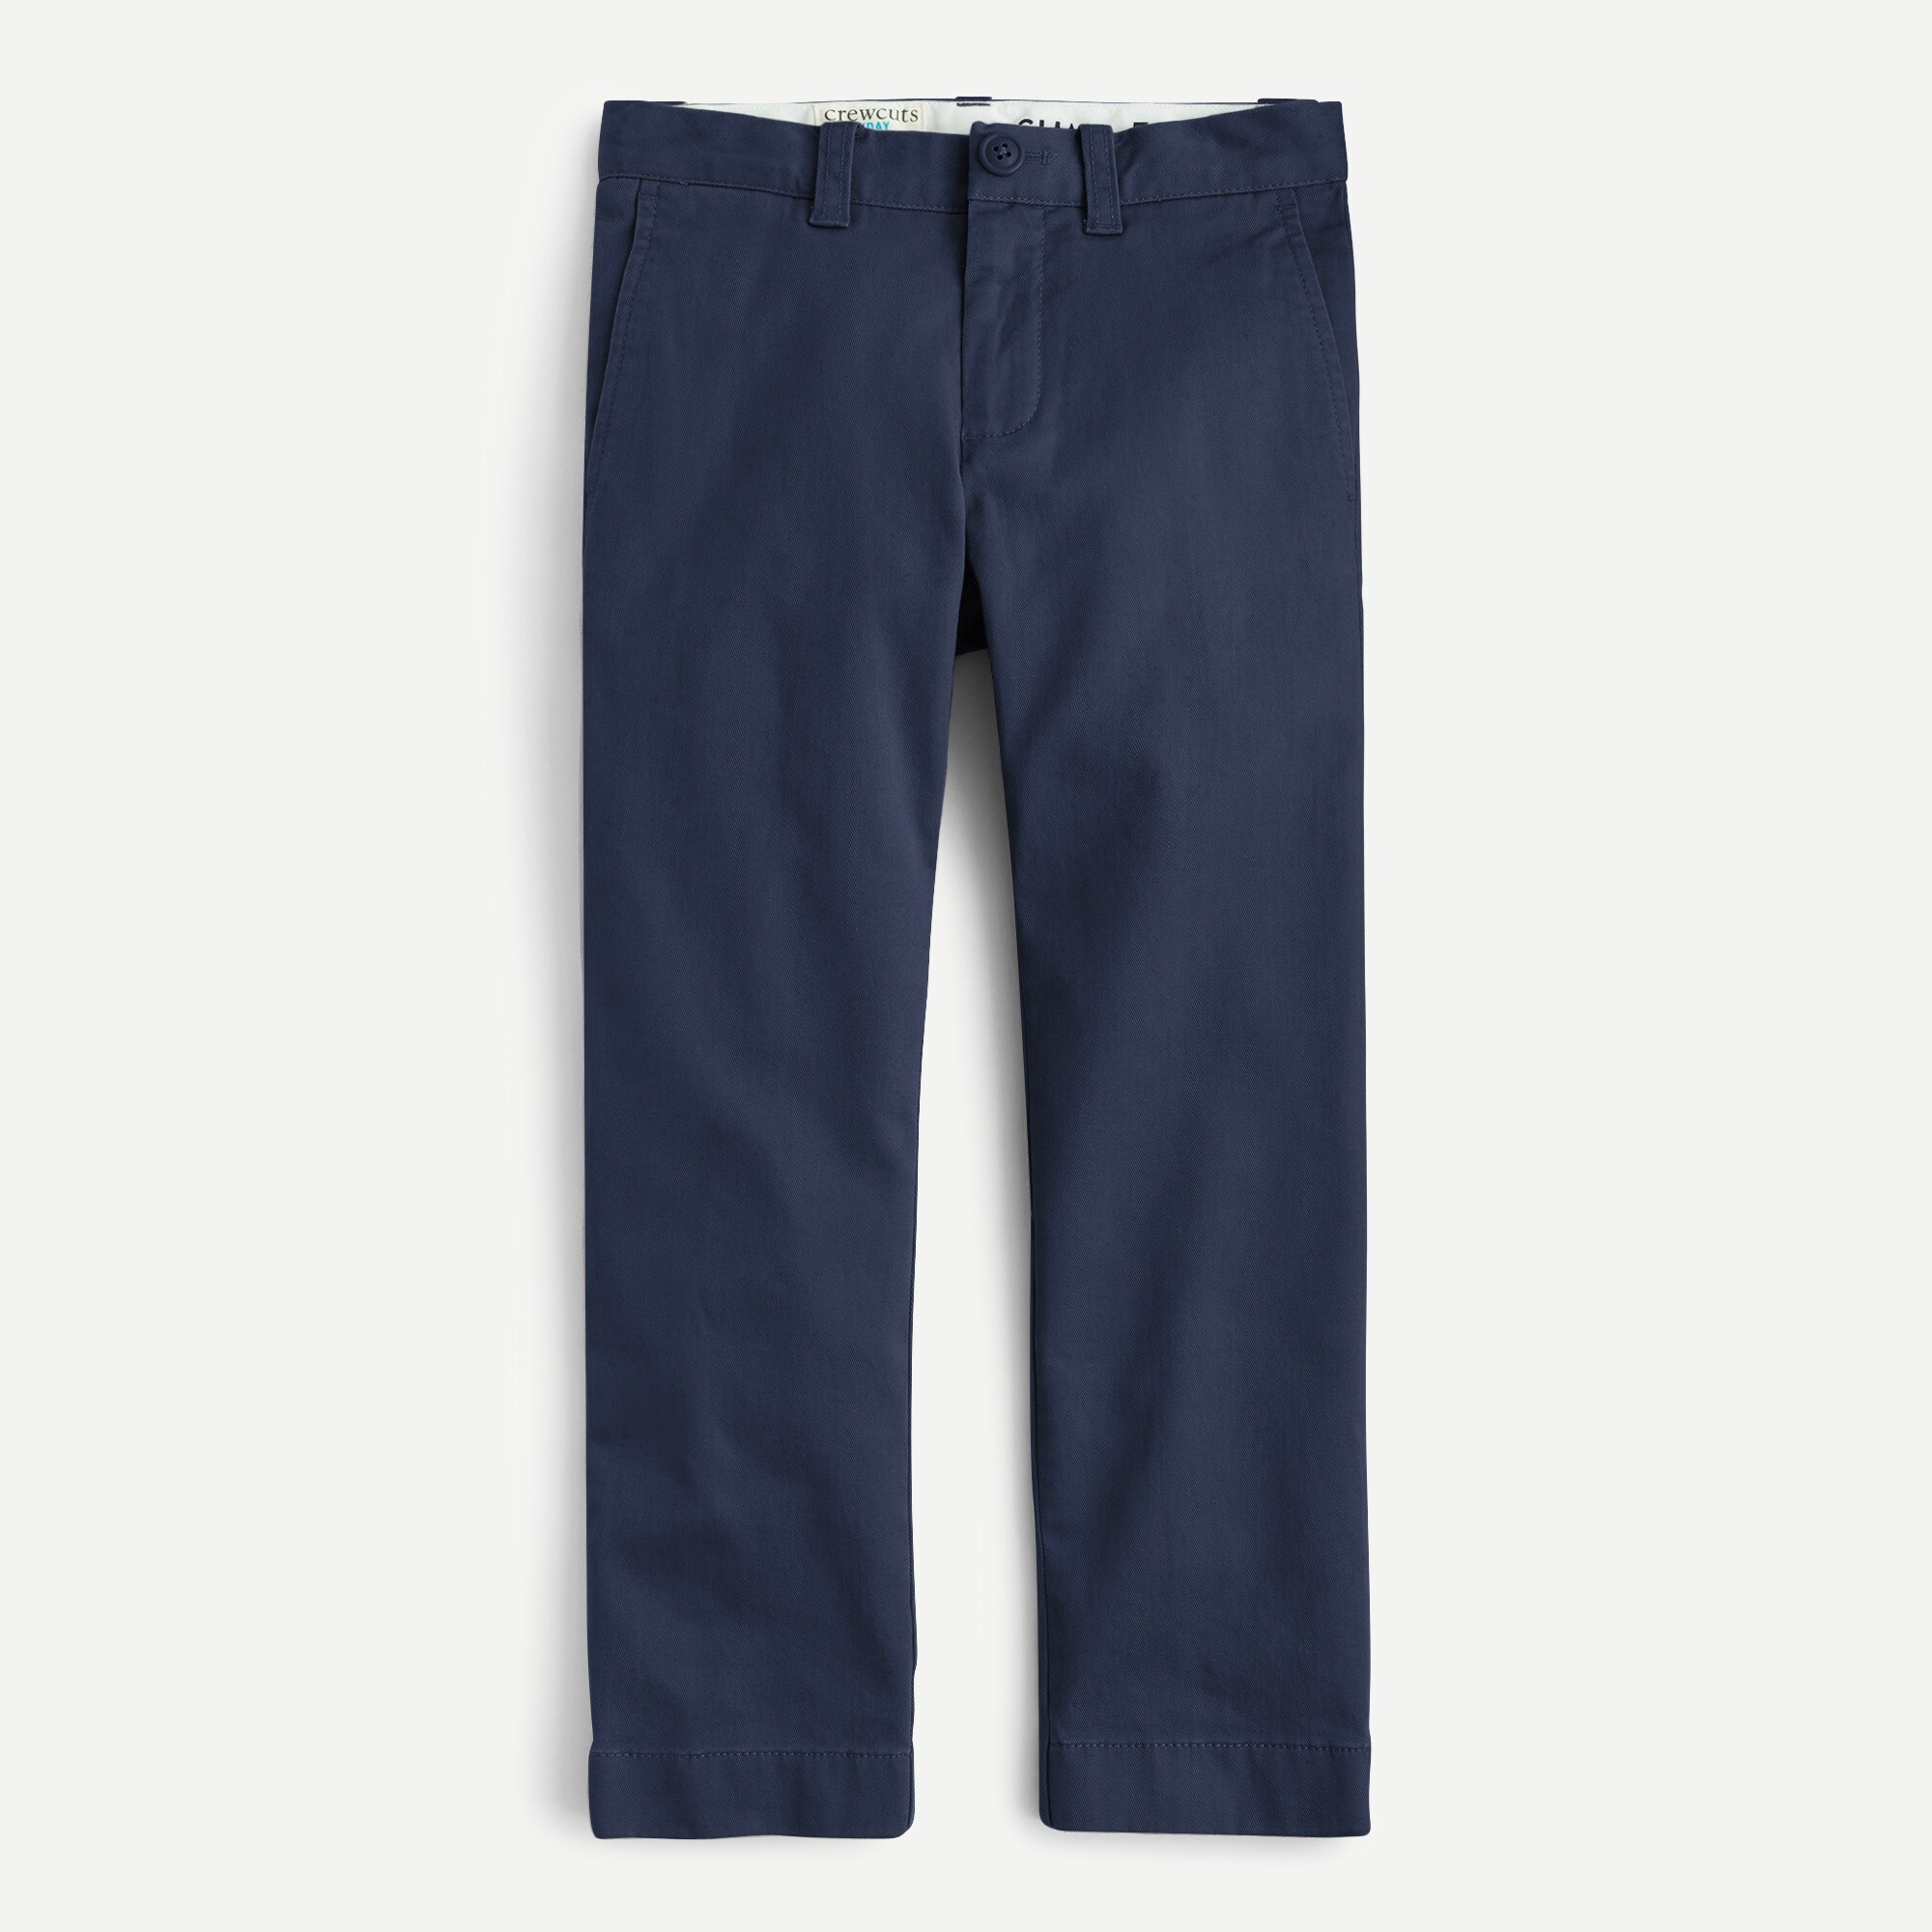 Boys' stretch chino pant in slim fit boy pants c